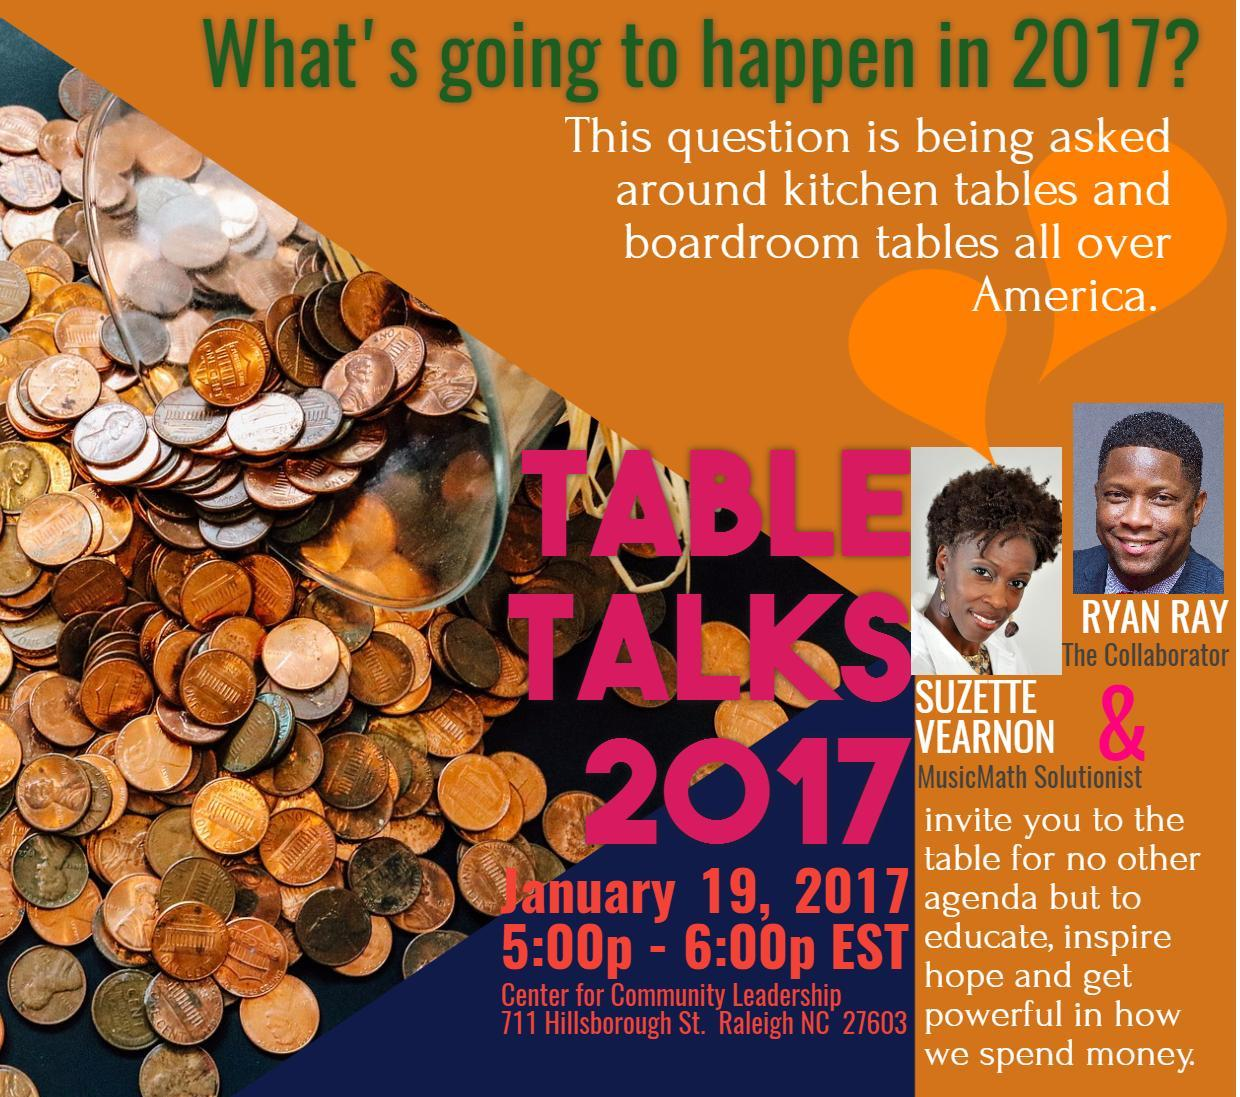 Table Talks 2017